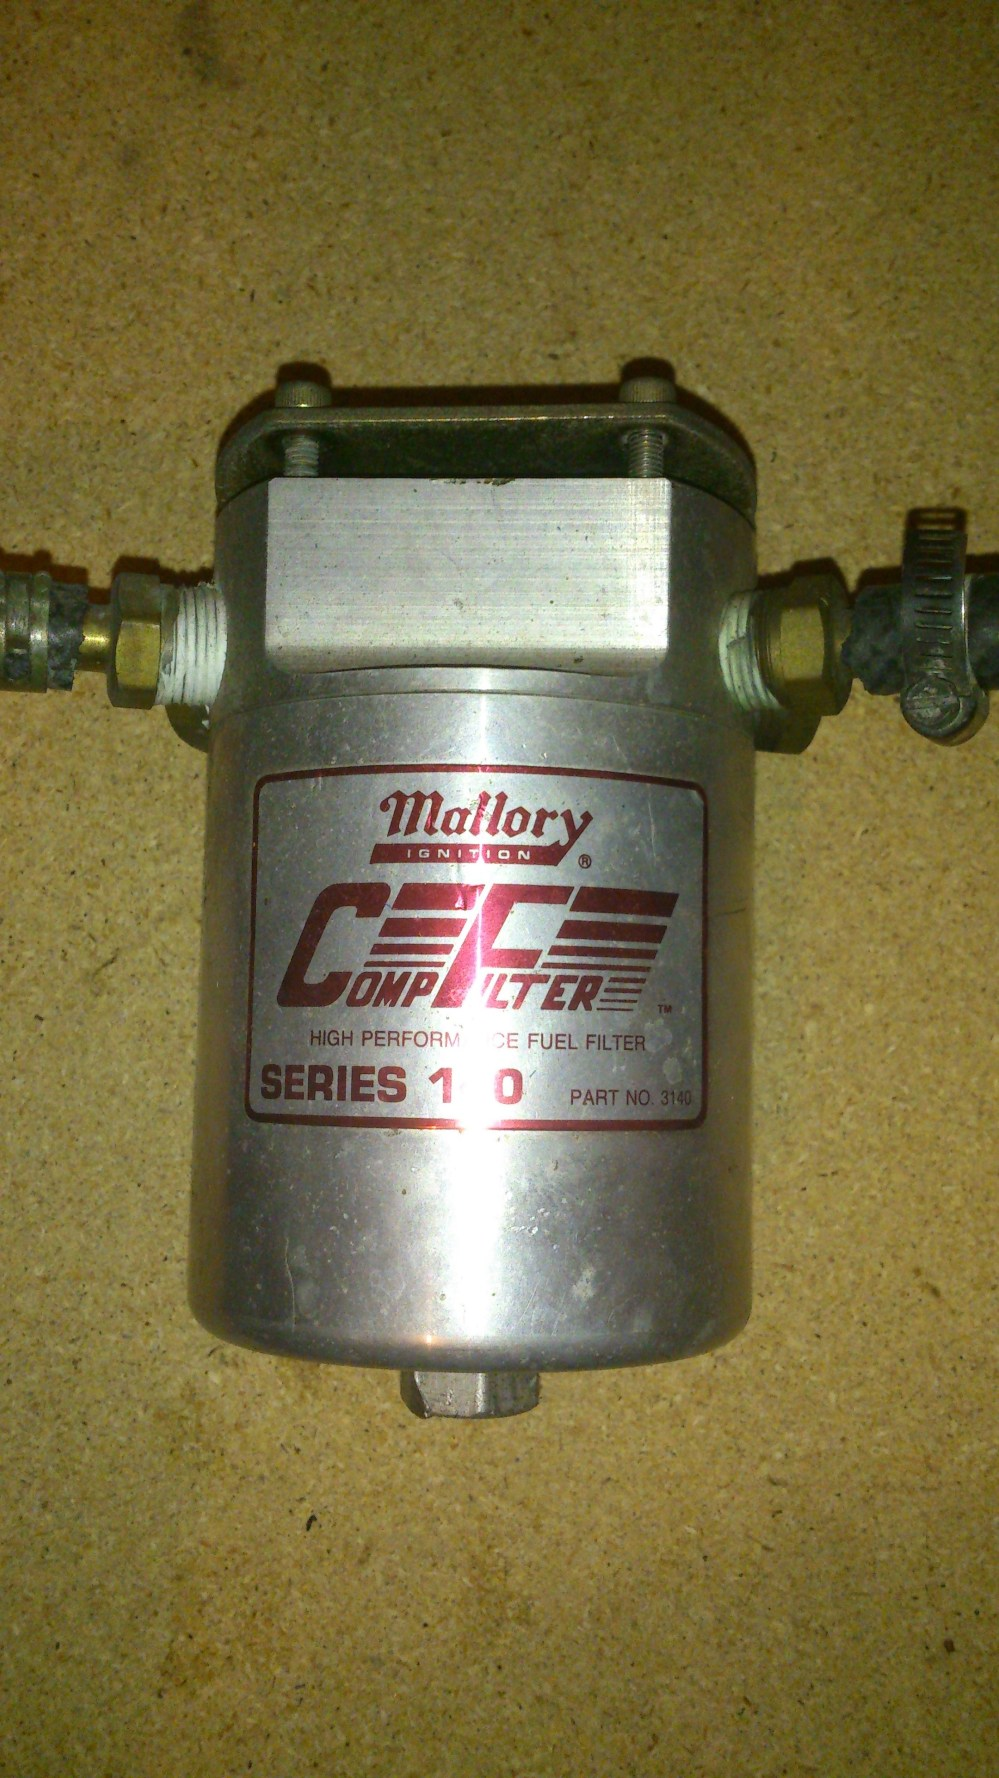 medium resolution of  for sale mallory comp filter